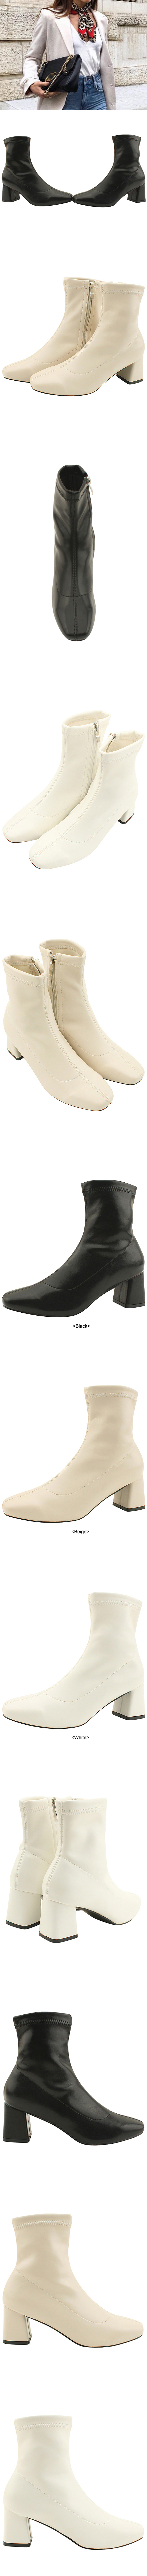 Square Nose Span Middle Heel Ankle Boots 6cm Black